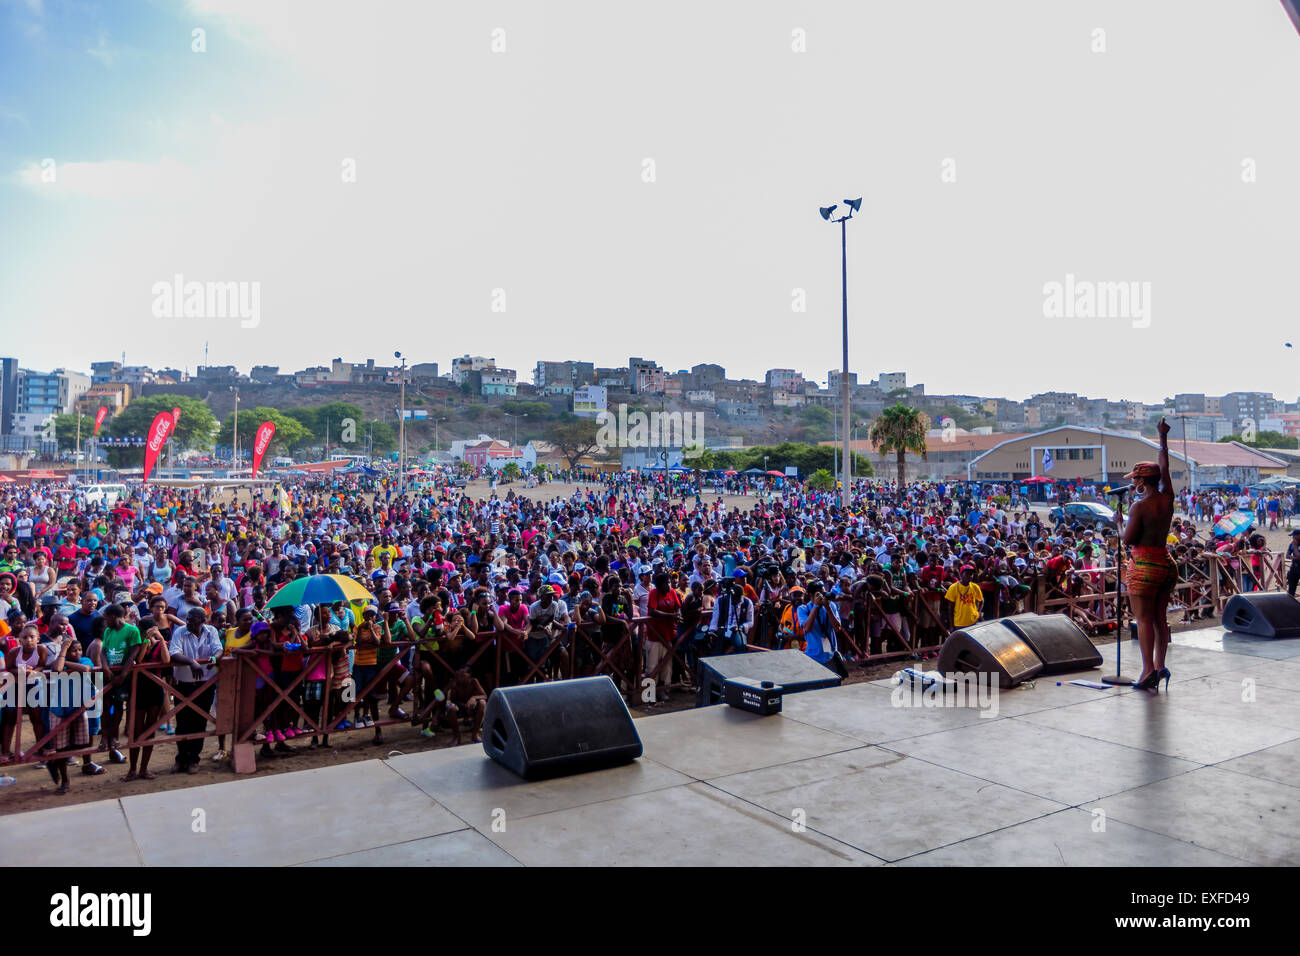 Praia, Cape Verde. 12th July, 2015, World music festival 'Badja Ku Sol' Credit:  António Gomes/Alamy - Stock Image